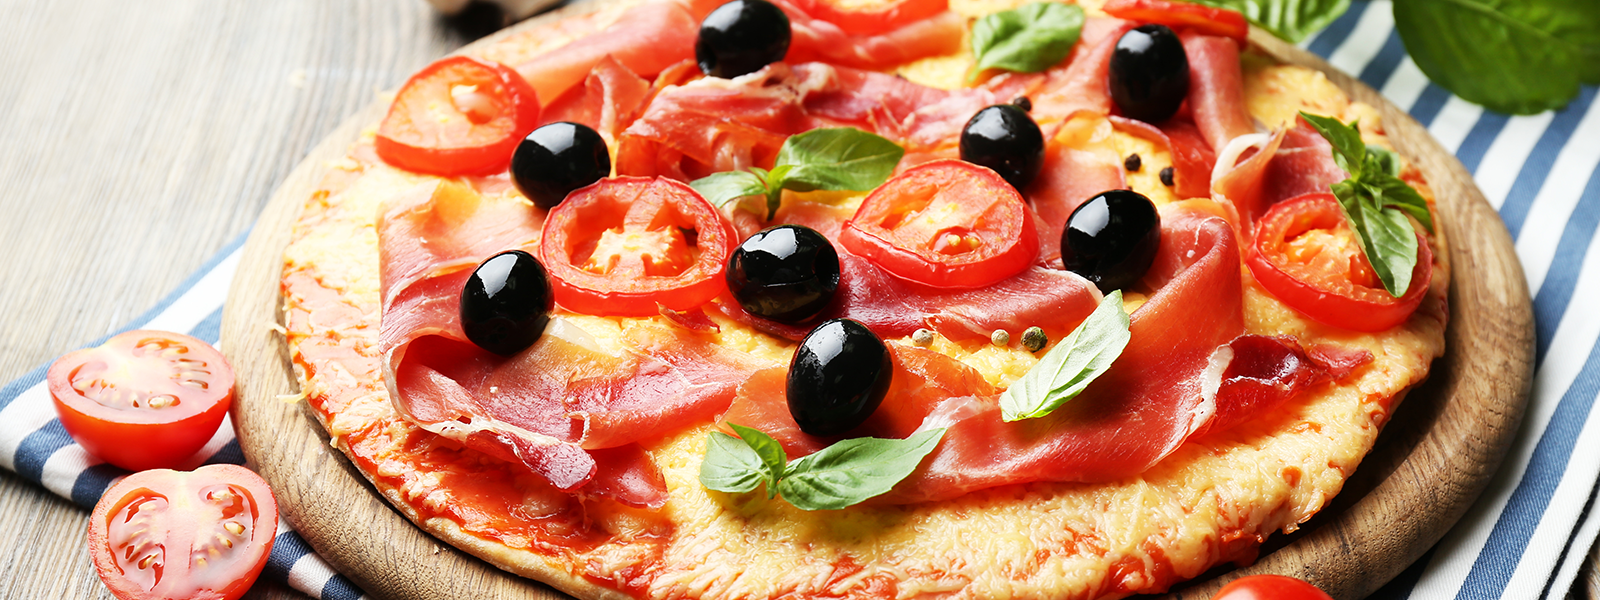 Vitos Pizzeria Takeaway Online Ordering In Hartlepool